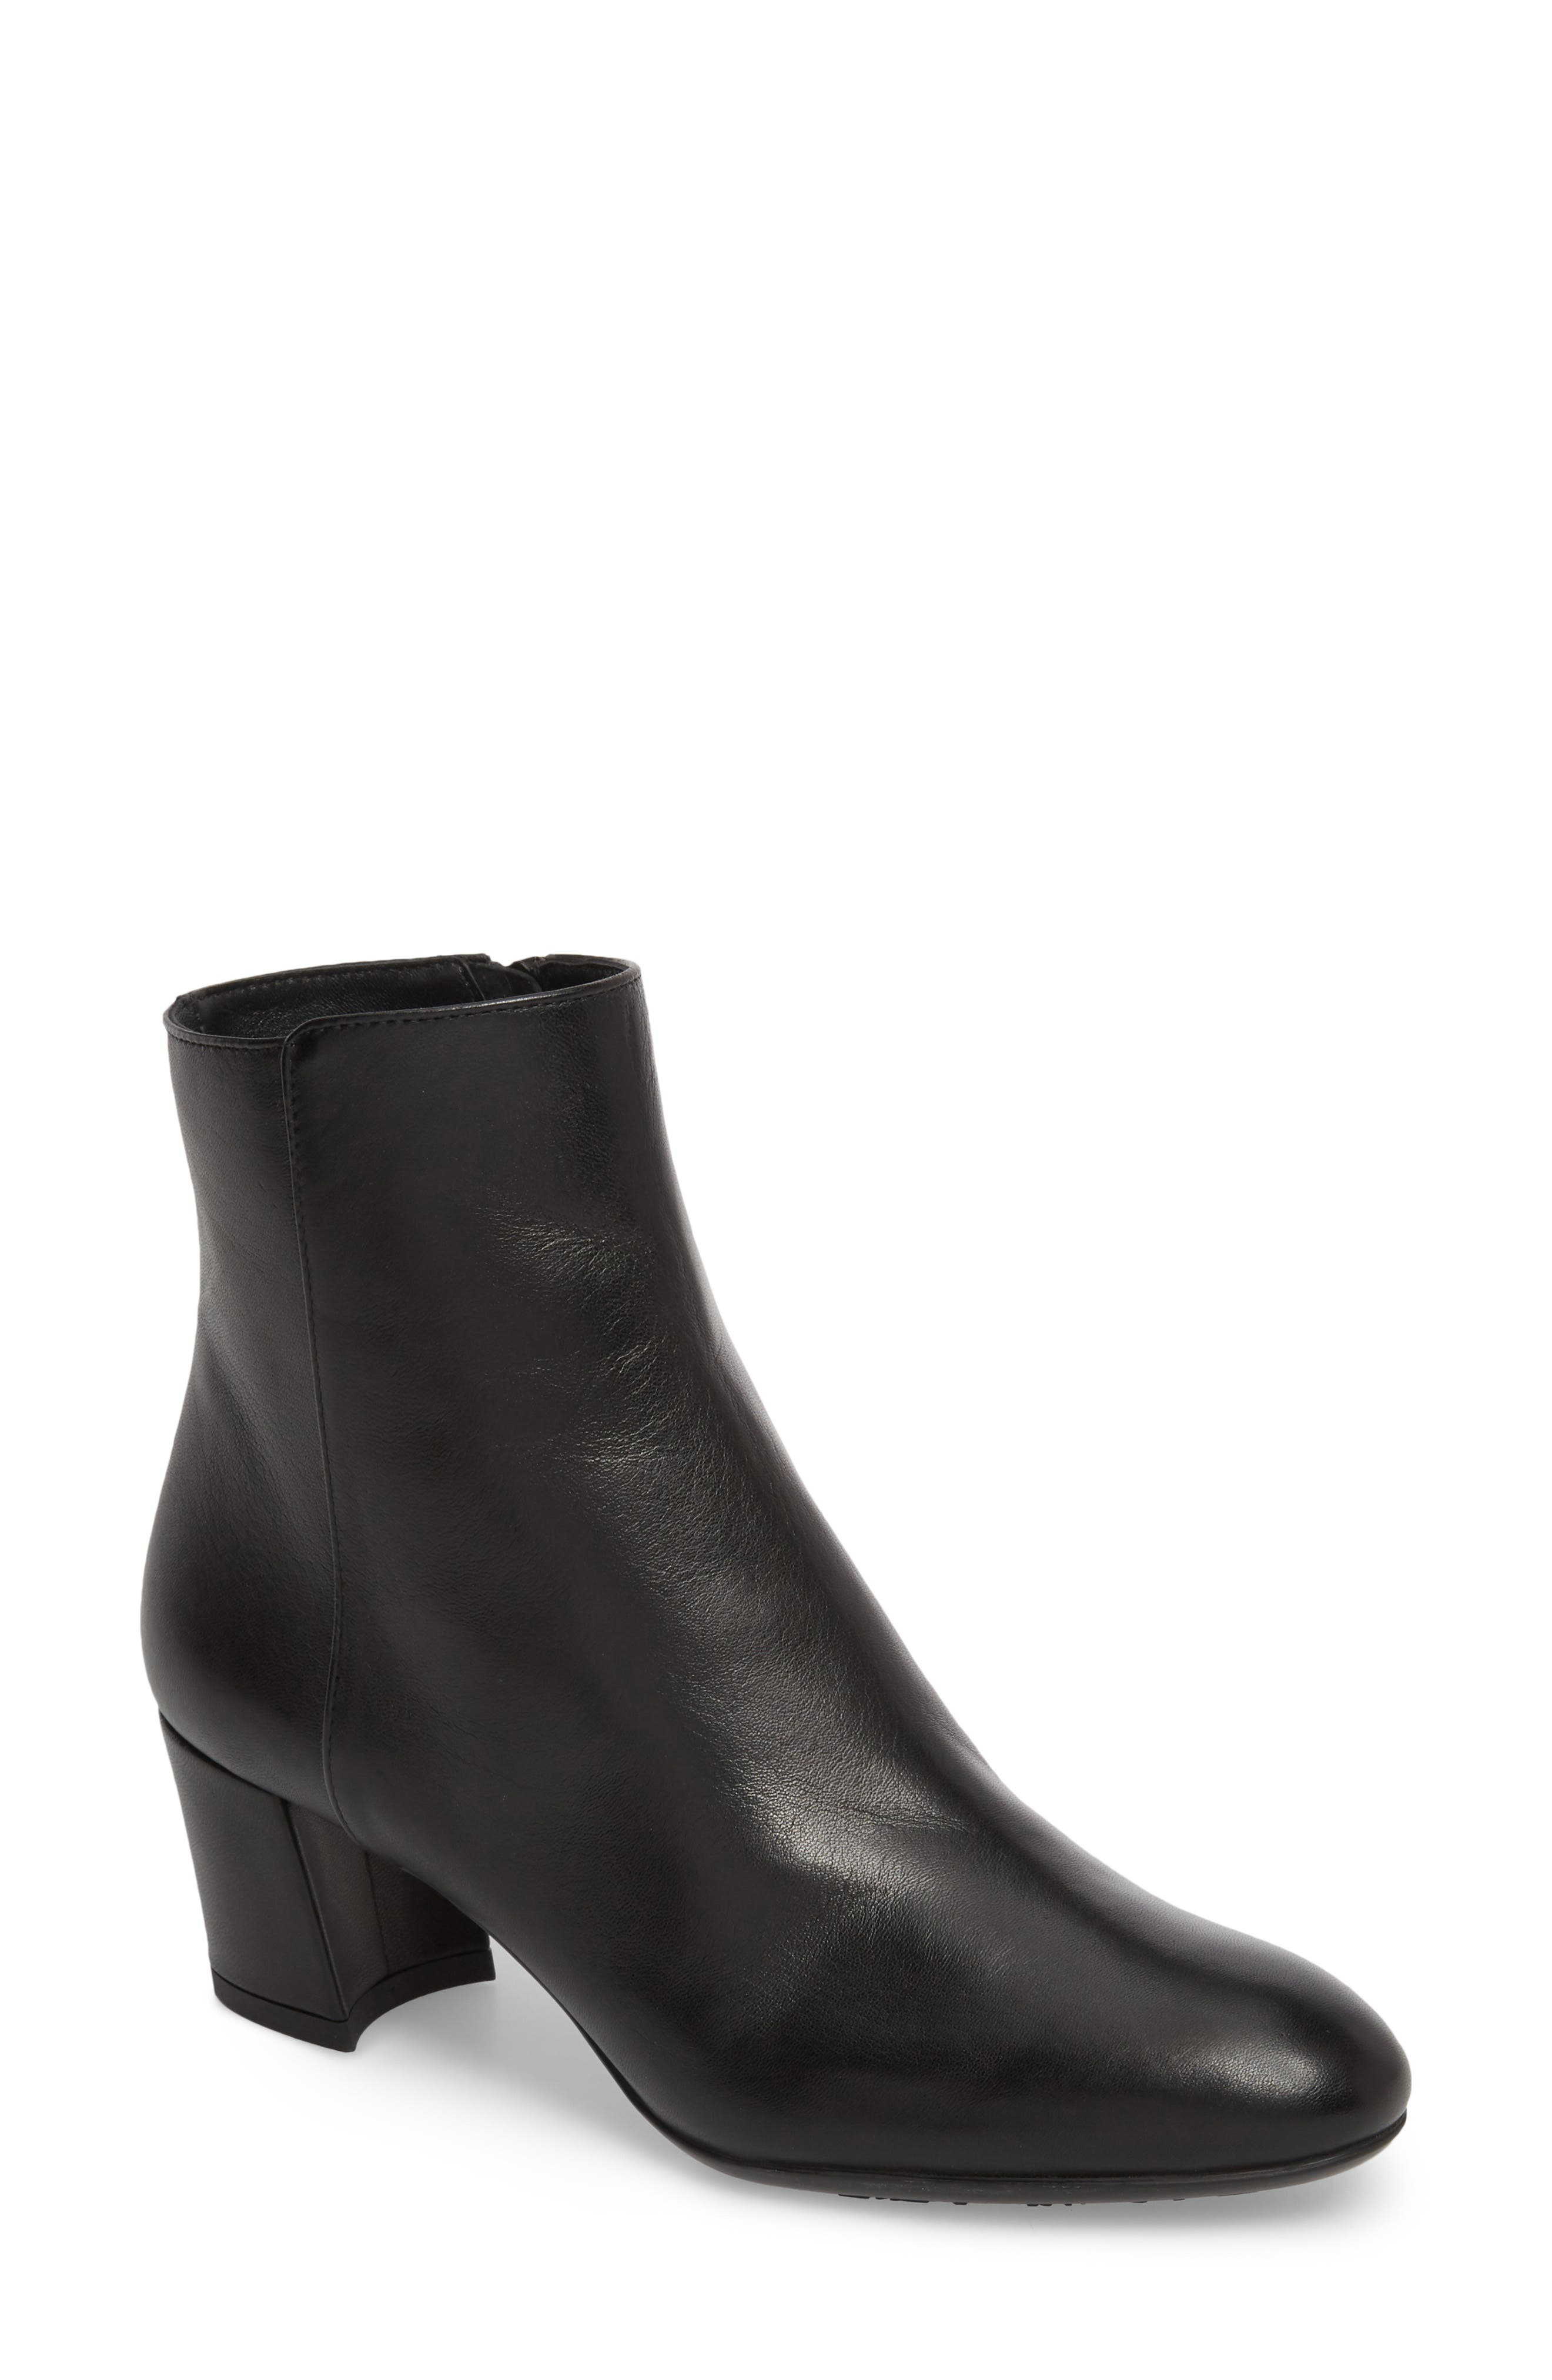 AGL ATTILIO GIUSTI LEOMBRUNI Block Heel Bootie, Black Leather